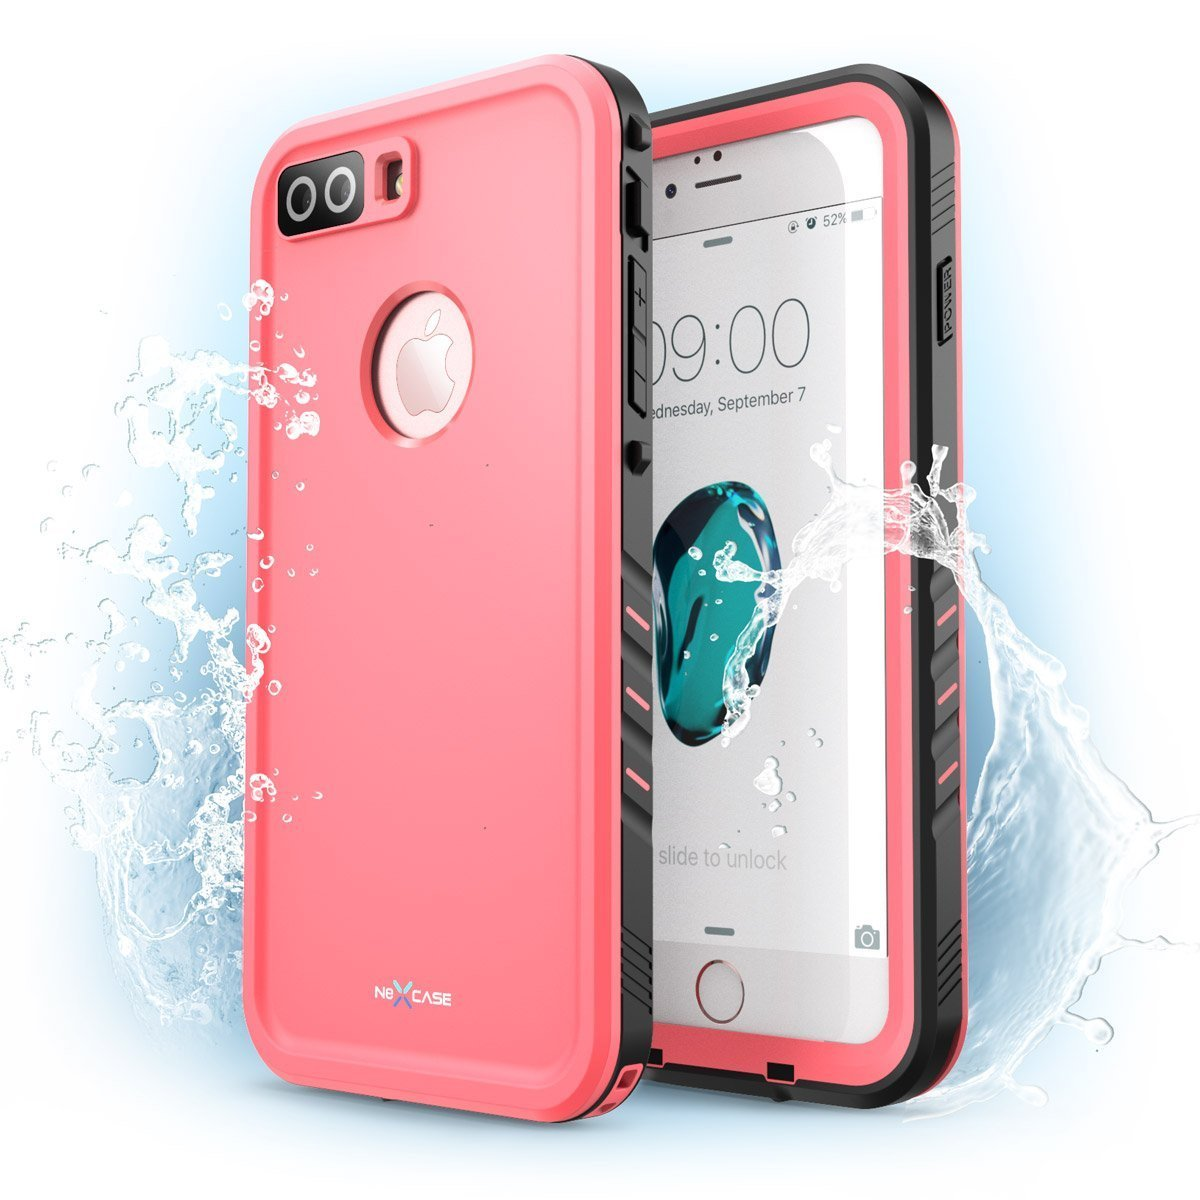 iPhone 7 Plus Case, NexCase Waterproof Full-body Rugged Case with Built-in Screen Protector for Apple iPhone 7 Plus 5.5 inch 2016 Release (Pink) by NexCase (Image #1)